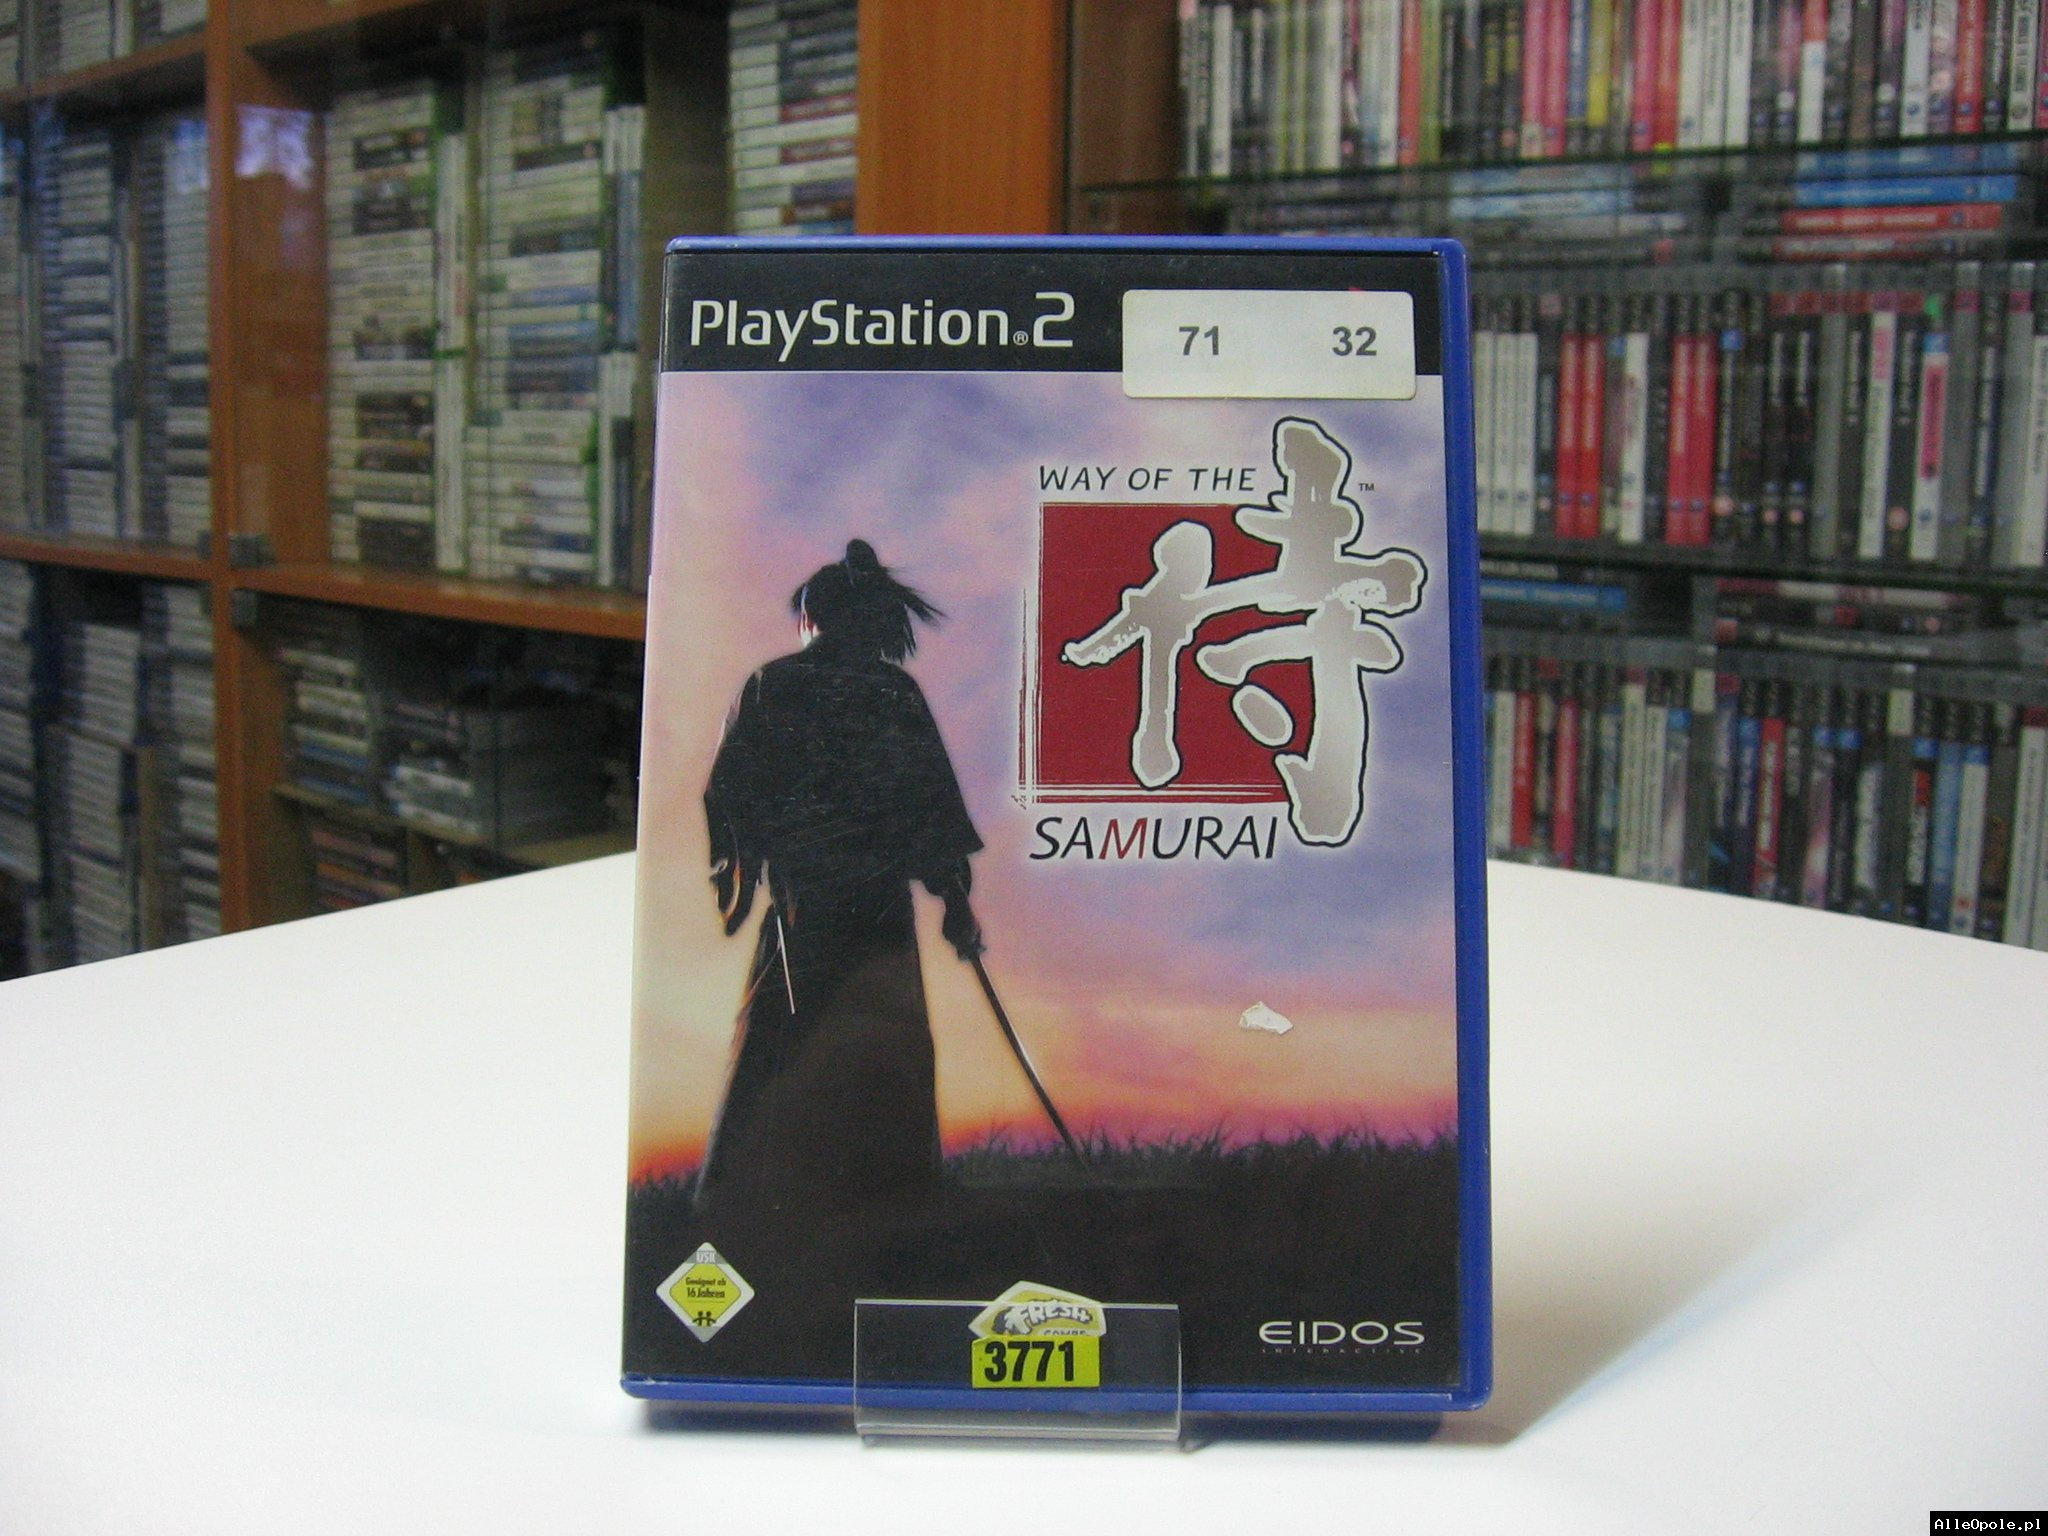 WAY OF THE SAMURAI - GRA Ps2 - Opole 0572